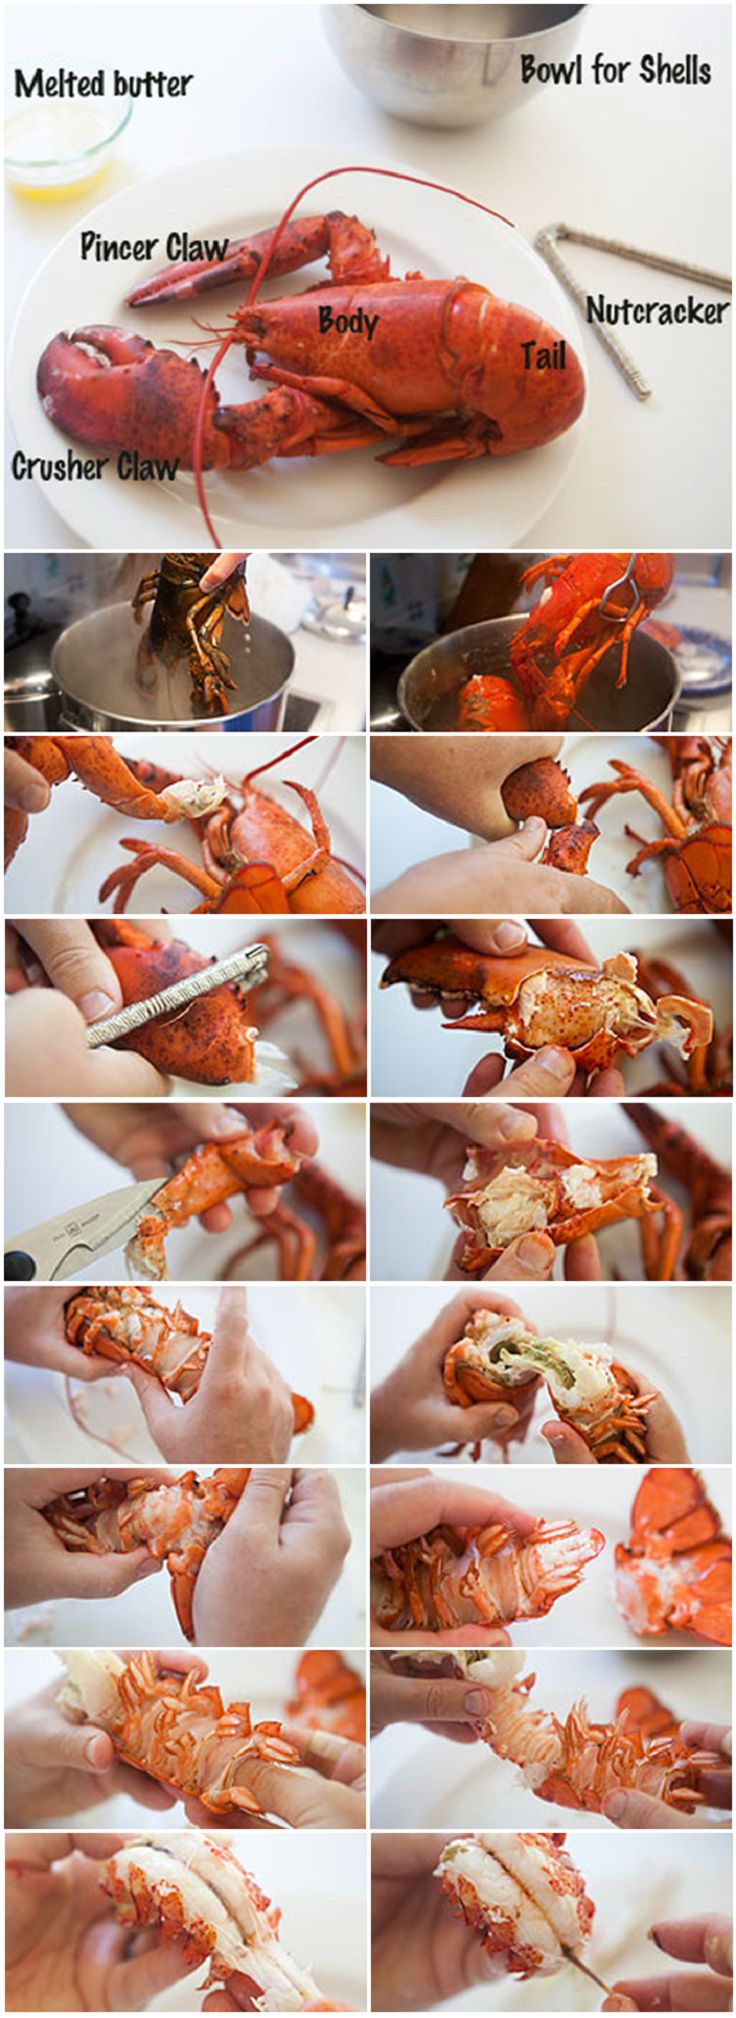 How to boil and eat lobster | Shrimp,Crab,Scallops ,& Lobster | Pinte ...